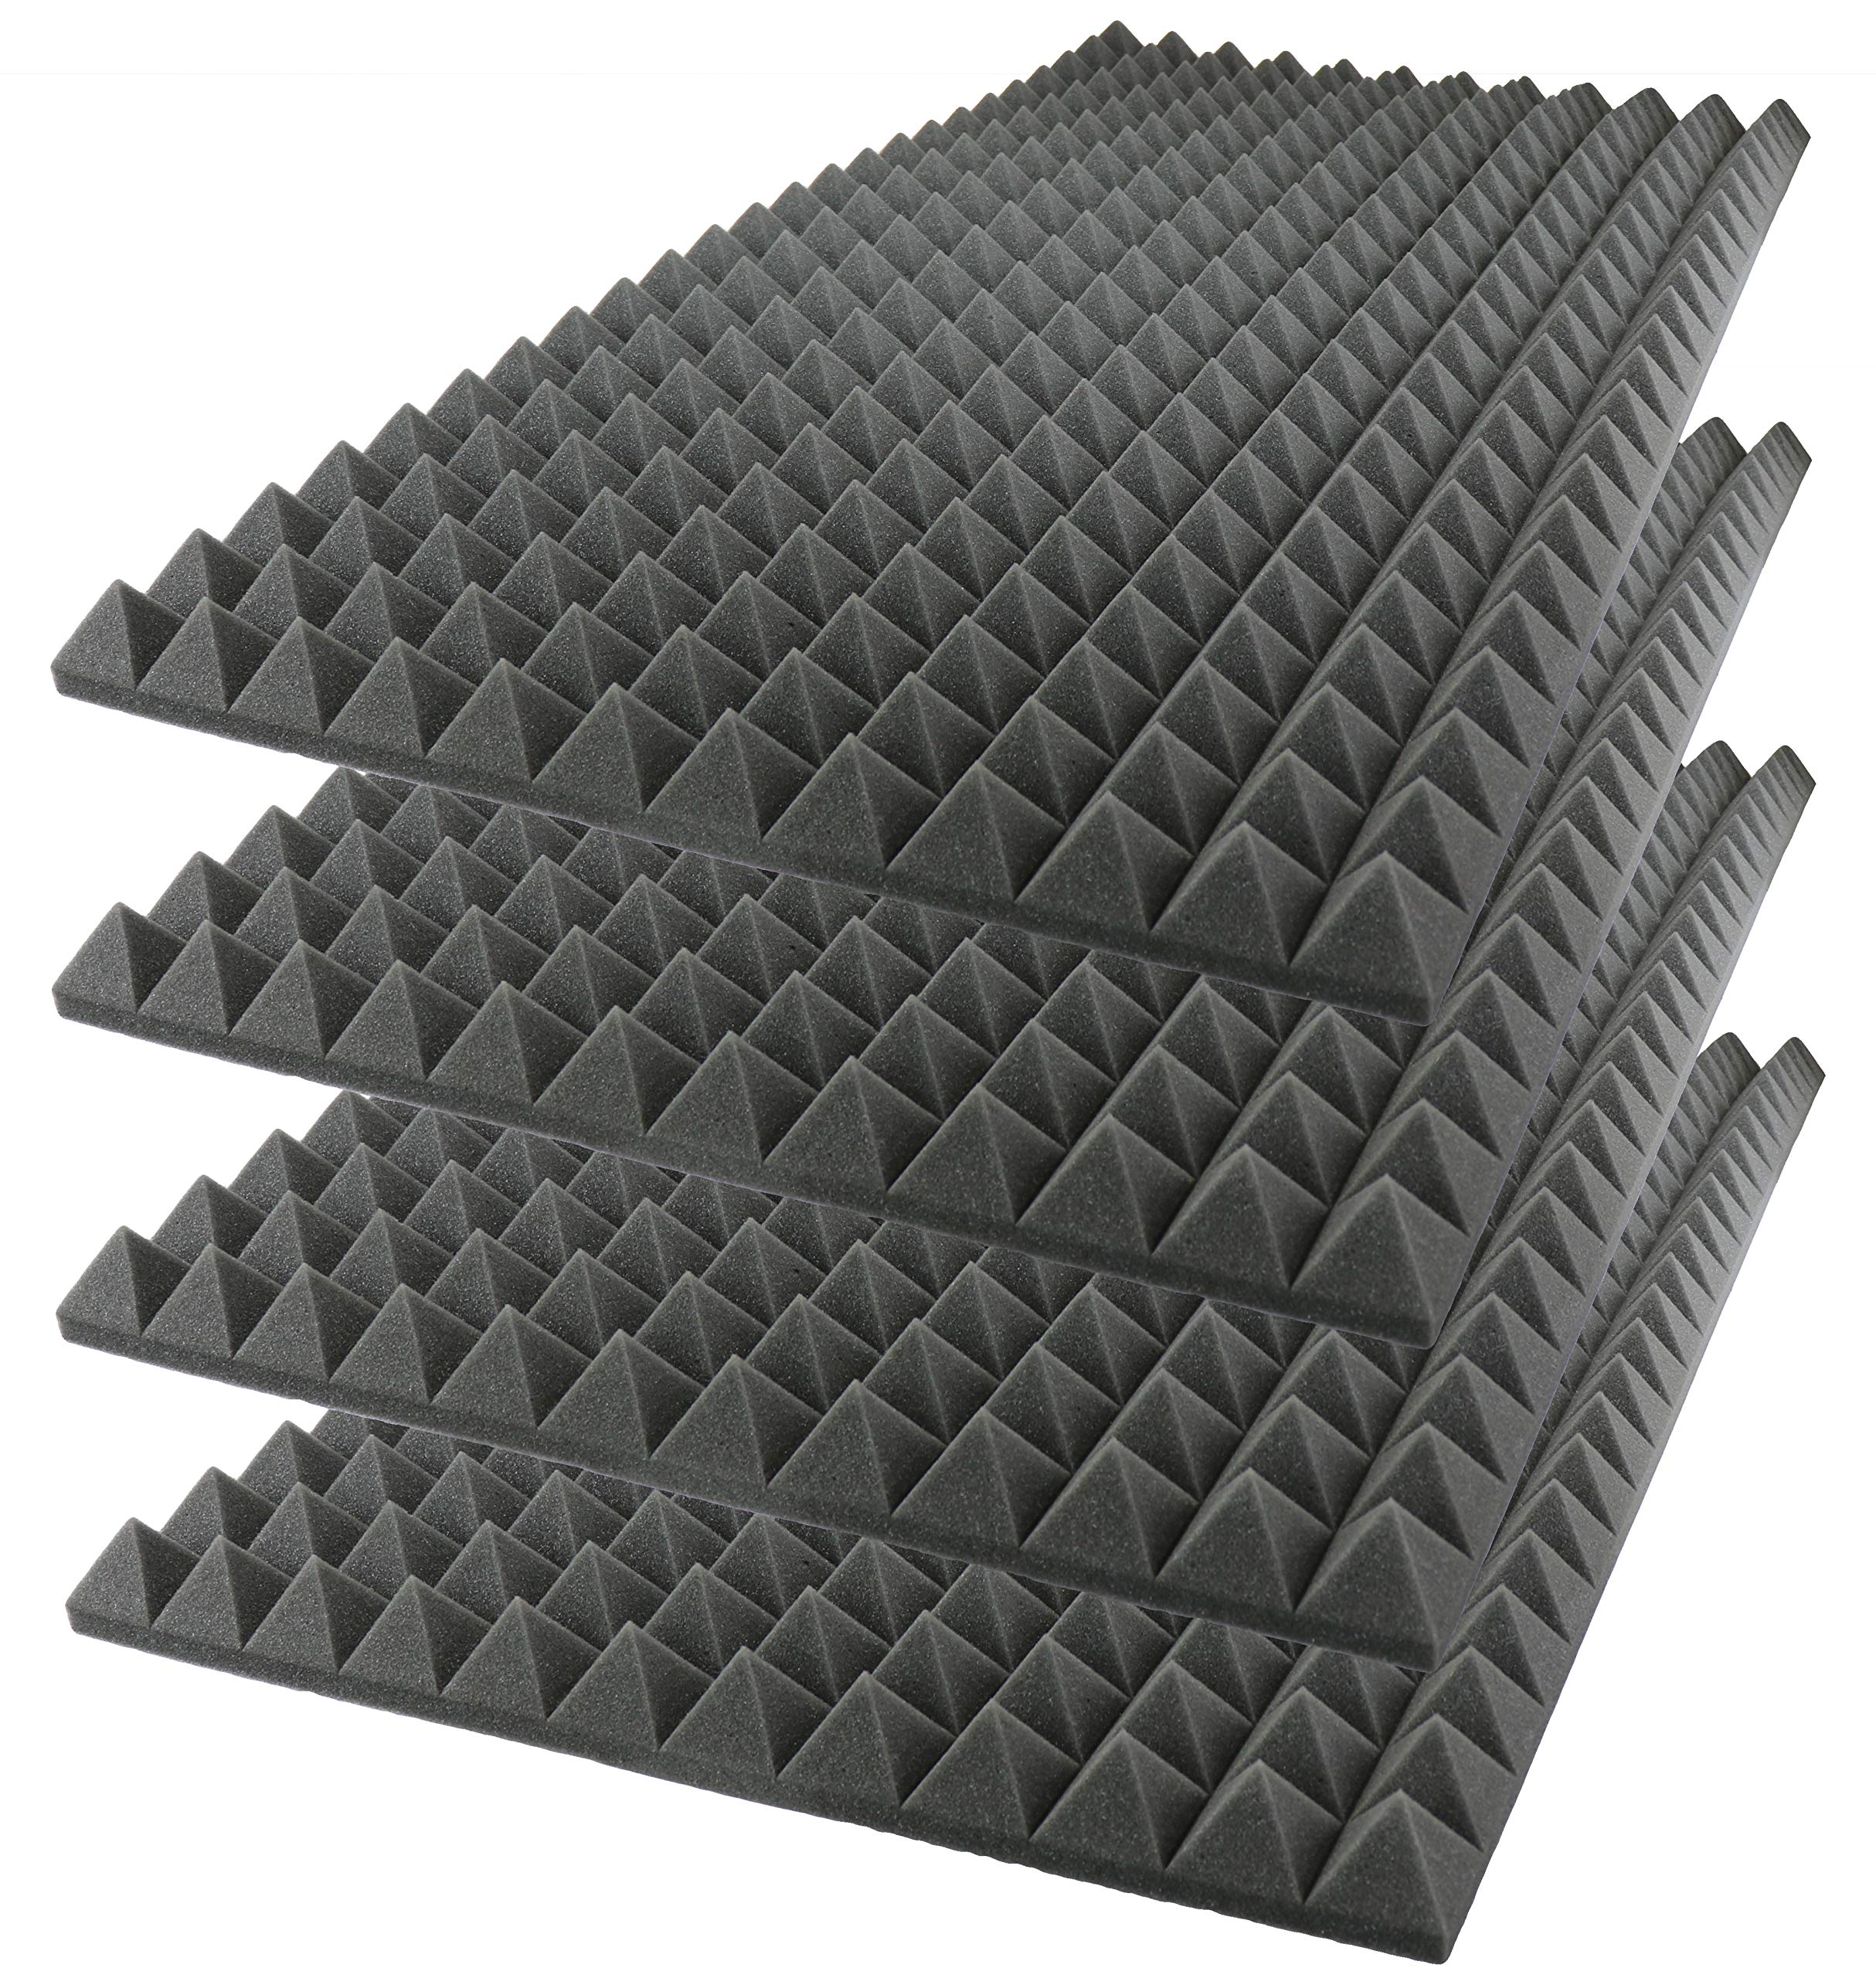 Foamily Acoustic Foam Sound Absorption Pyramid Studio Treatment Wall Panel, 48'' X 24'' X 2'' (4 Pack) by Foamily